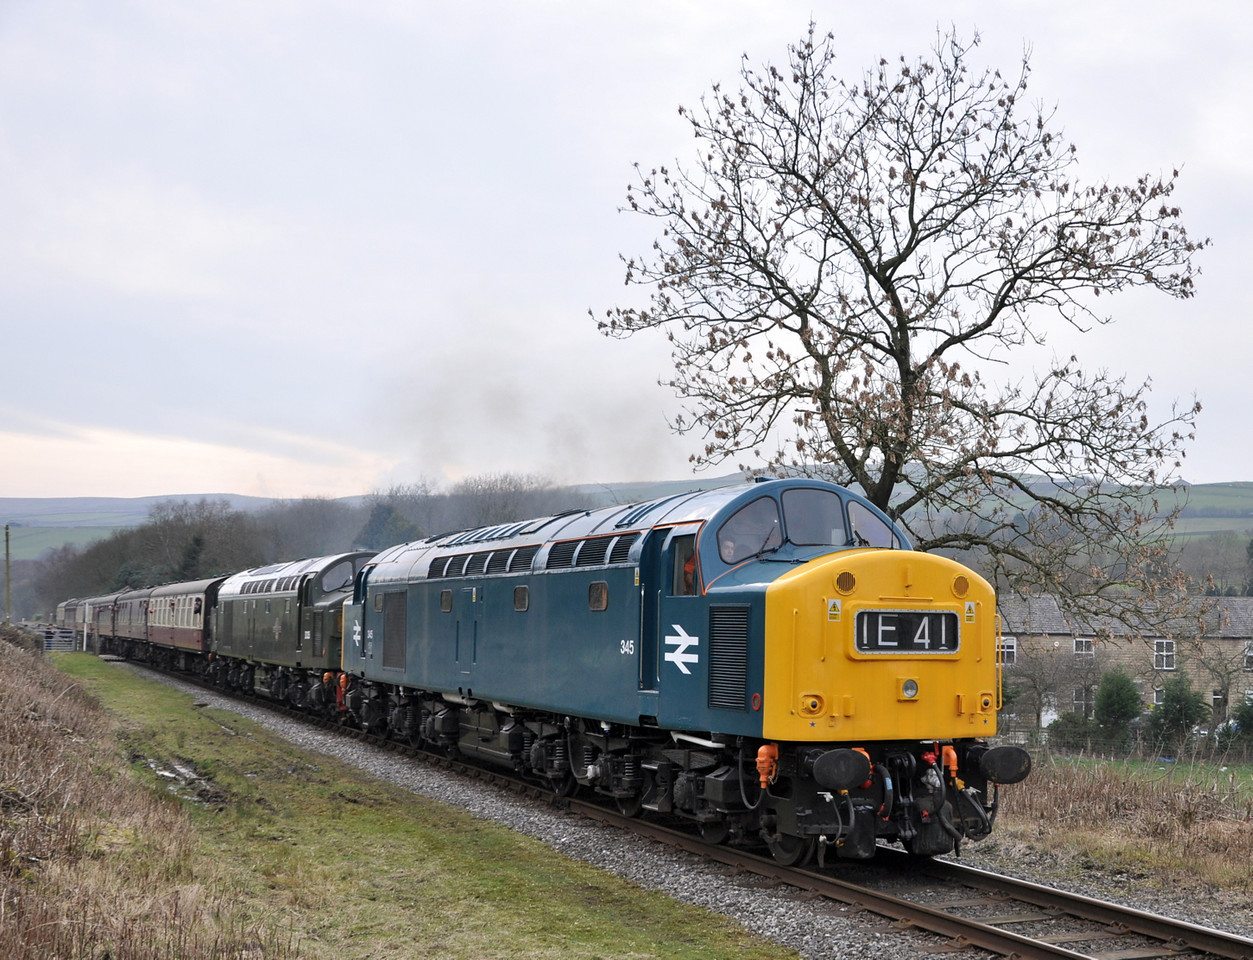 40145 and D335, Irwell Vale. 08/03/14.